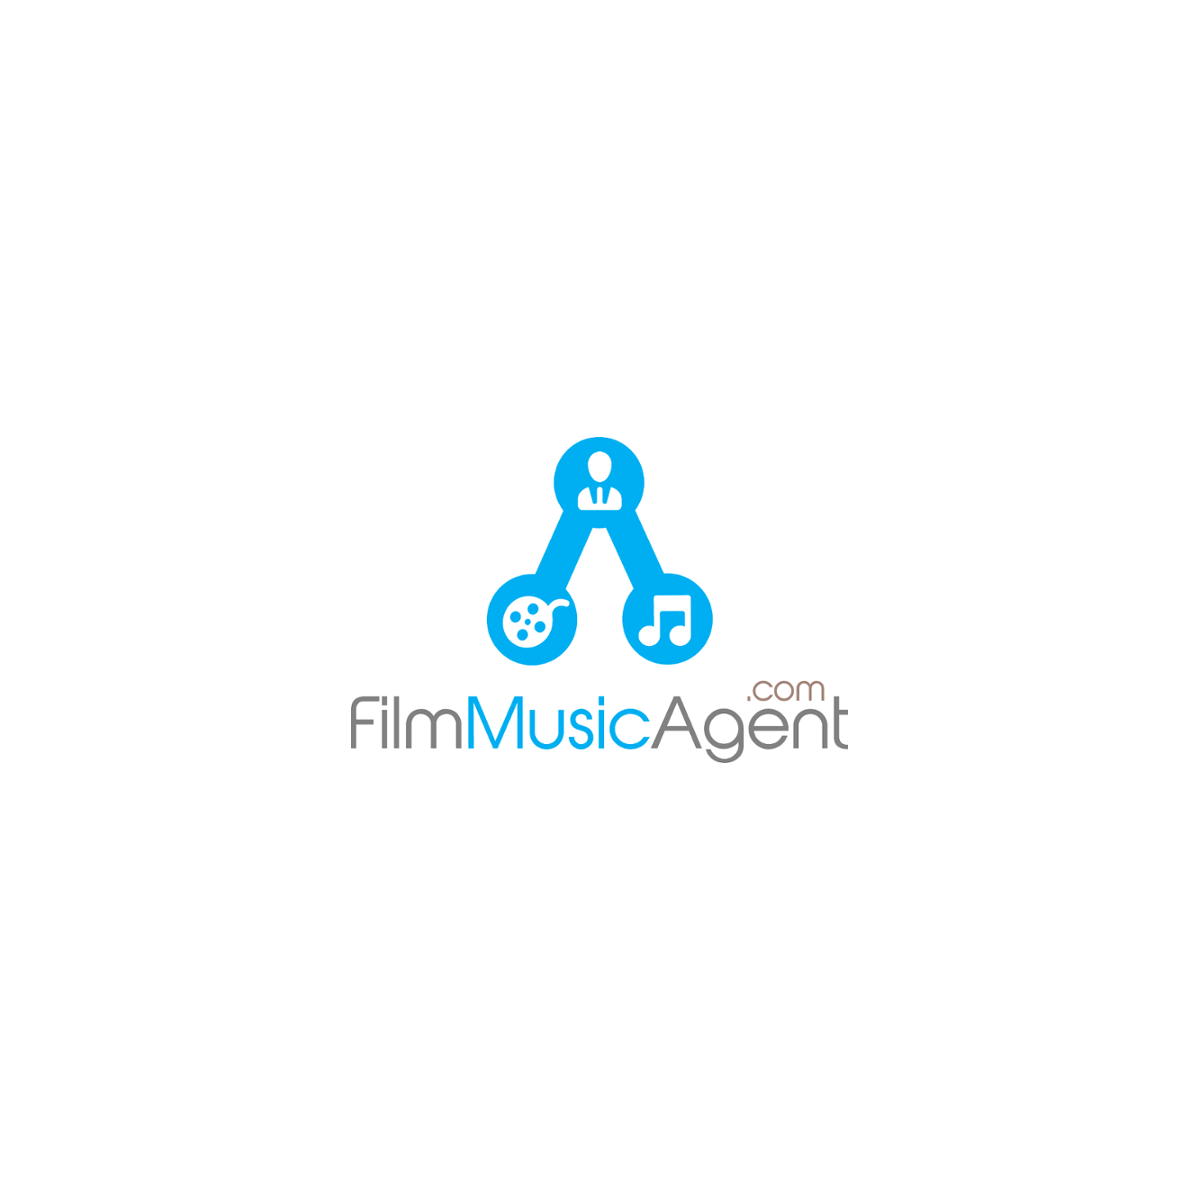 VersusMedia's Film Music Agent :   Ingrid Smith (Eclipse)  Seeks Film Music Opportunities